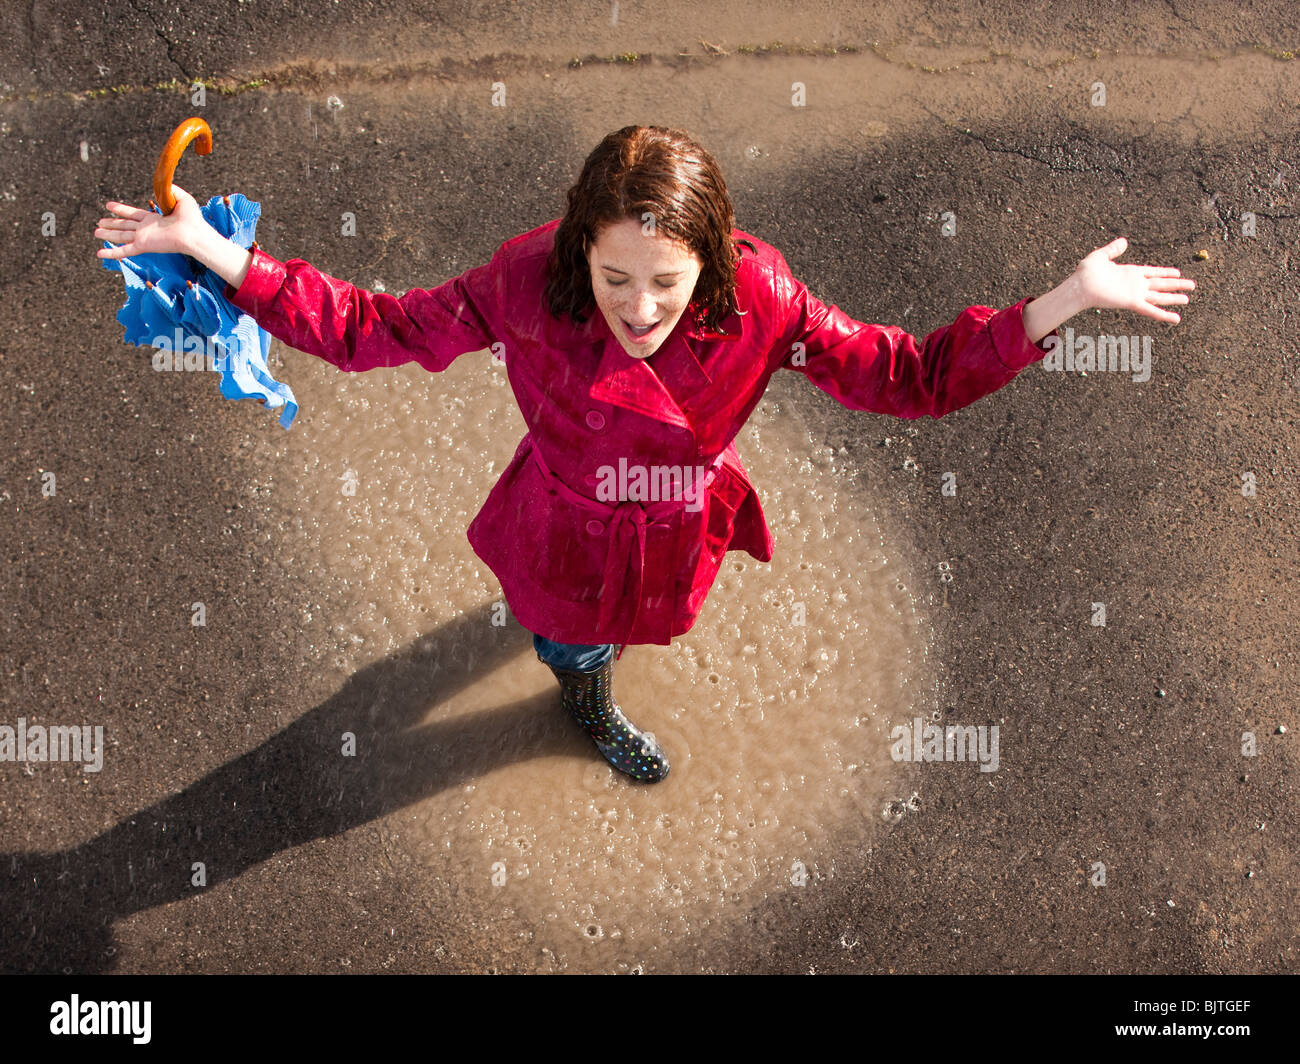 Young woman standing in rain with arms outstretched - Stock Image